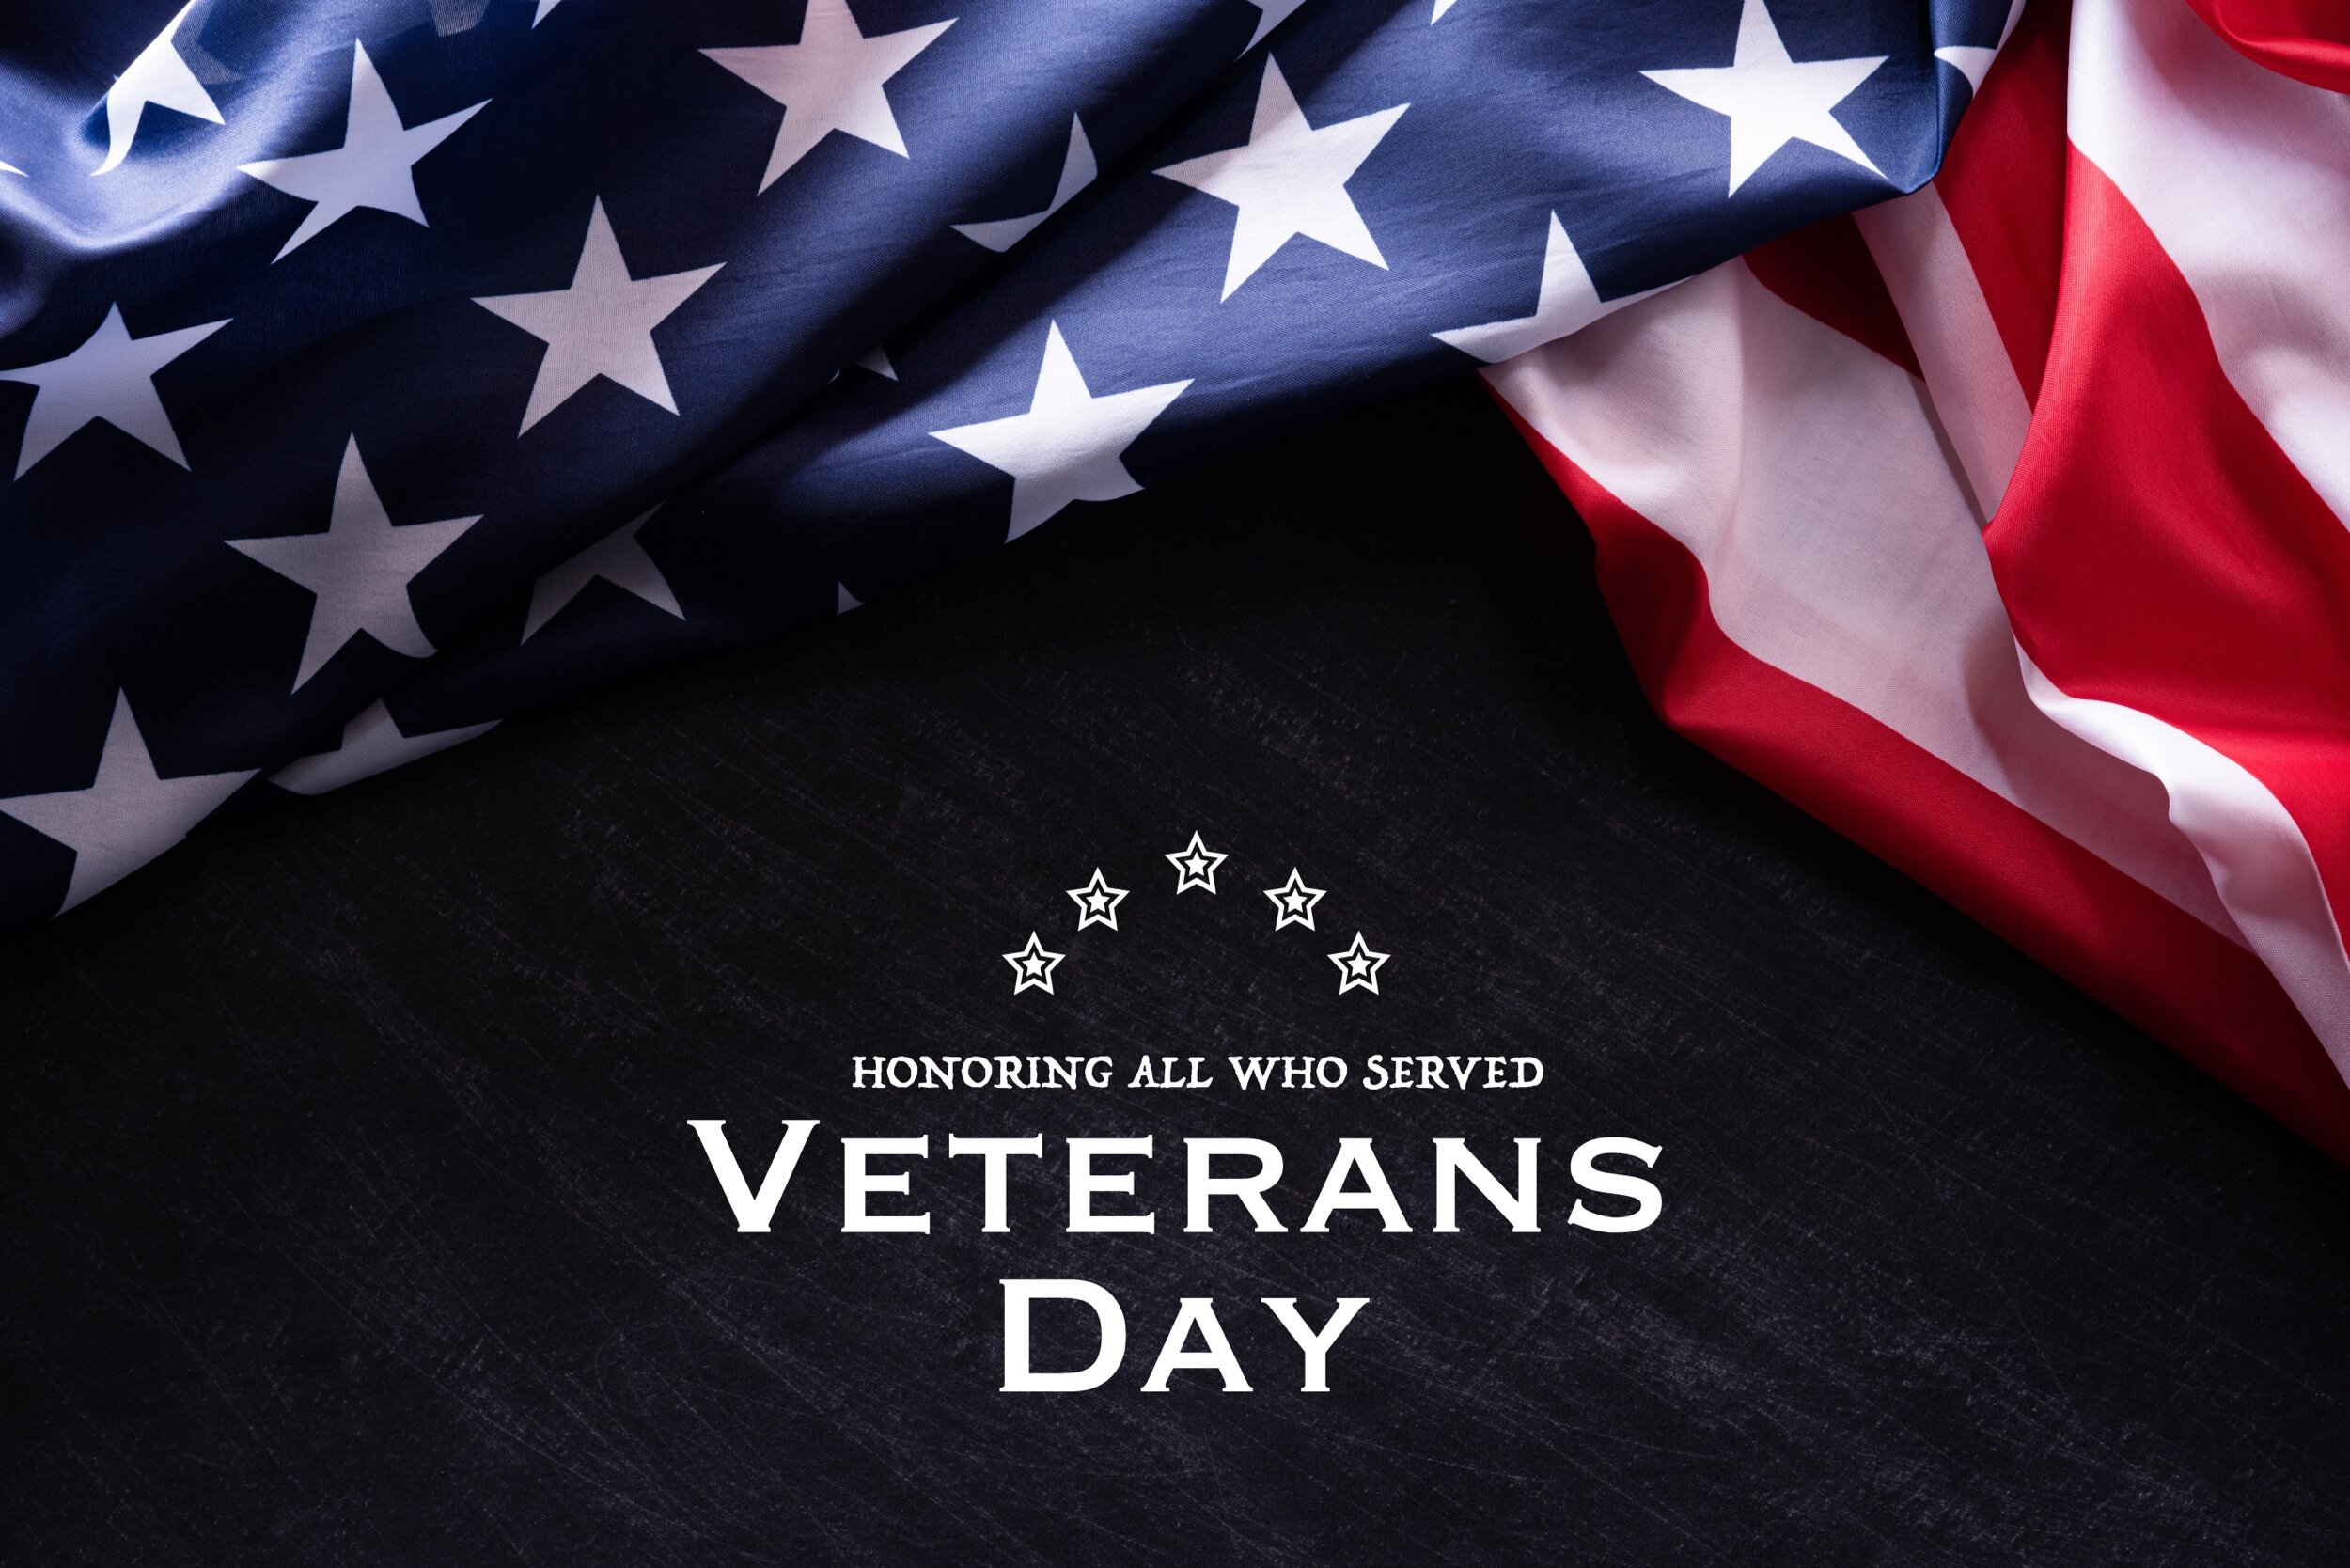 Honor all who served - Thank you to all who has served!